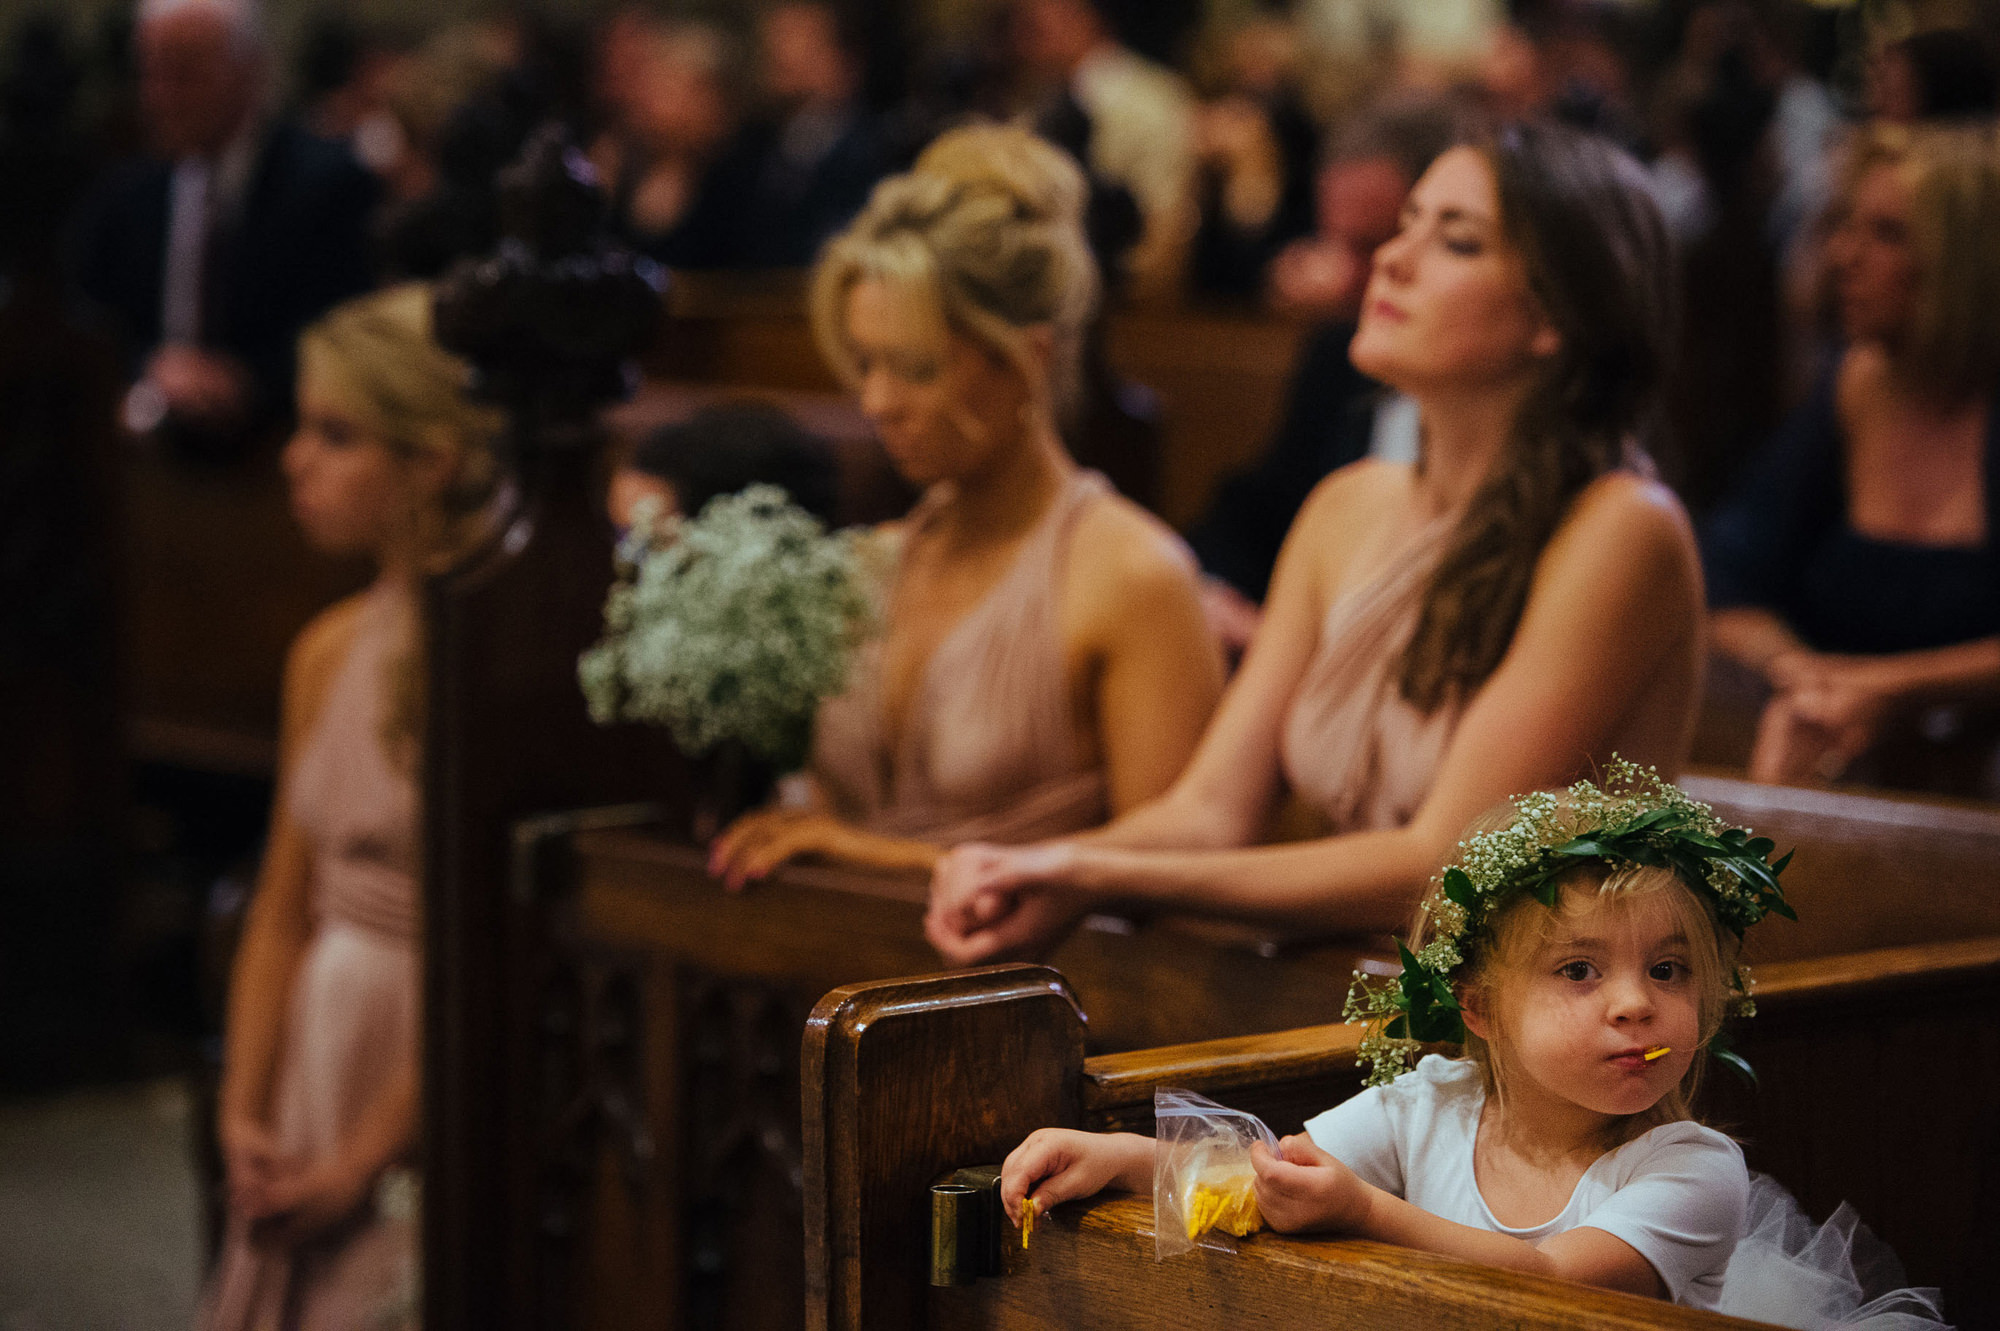 Cute photo of flower girl in floral crown eating snacks at church ceremony, by The Brenizers